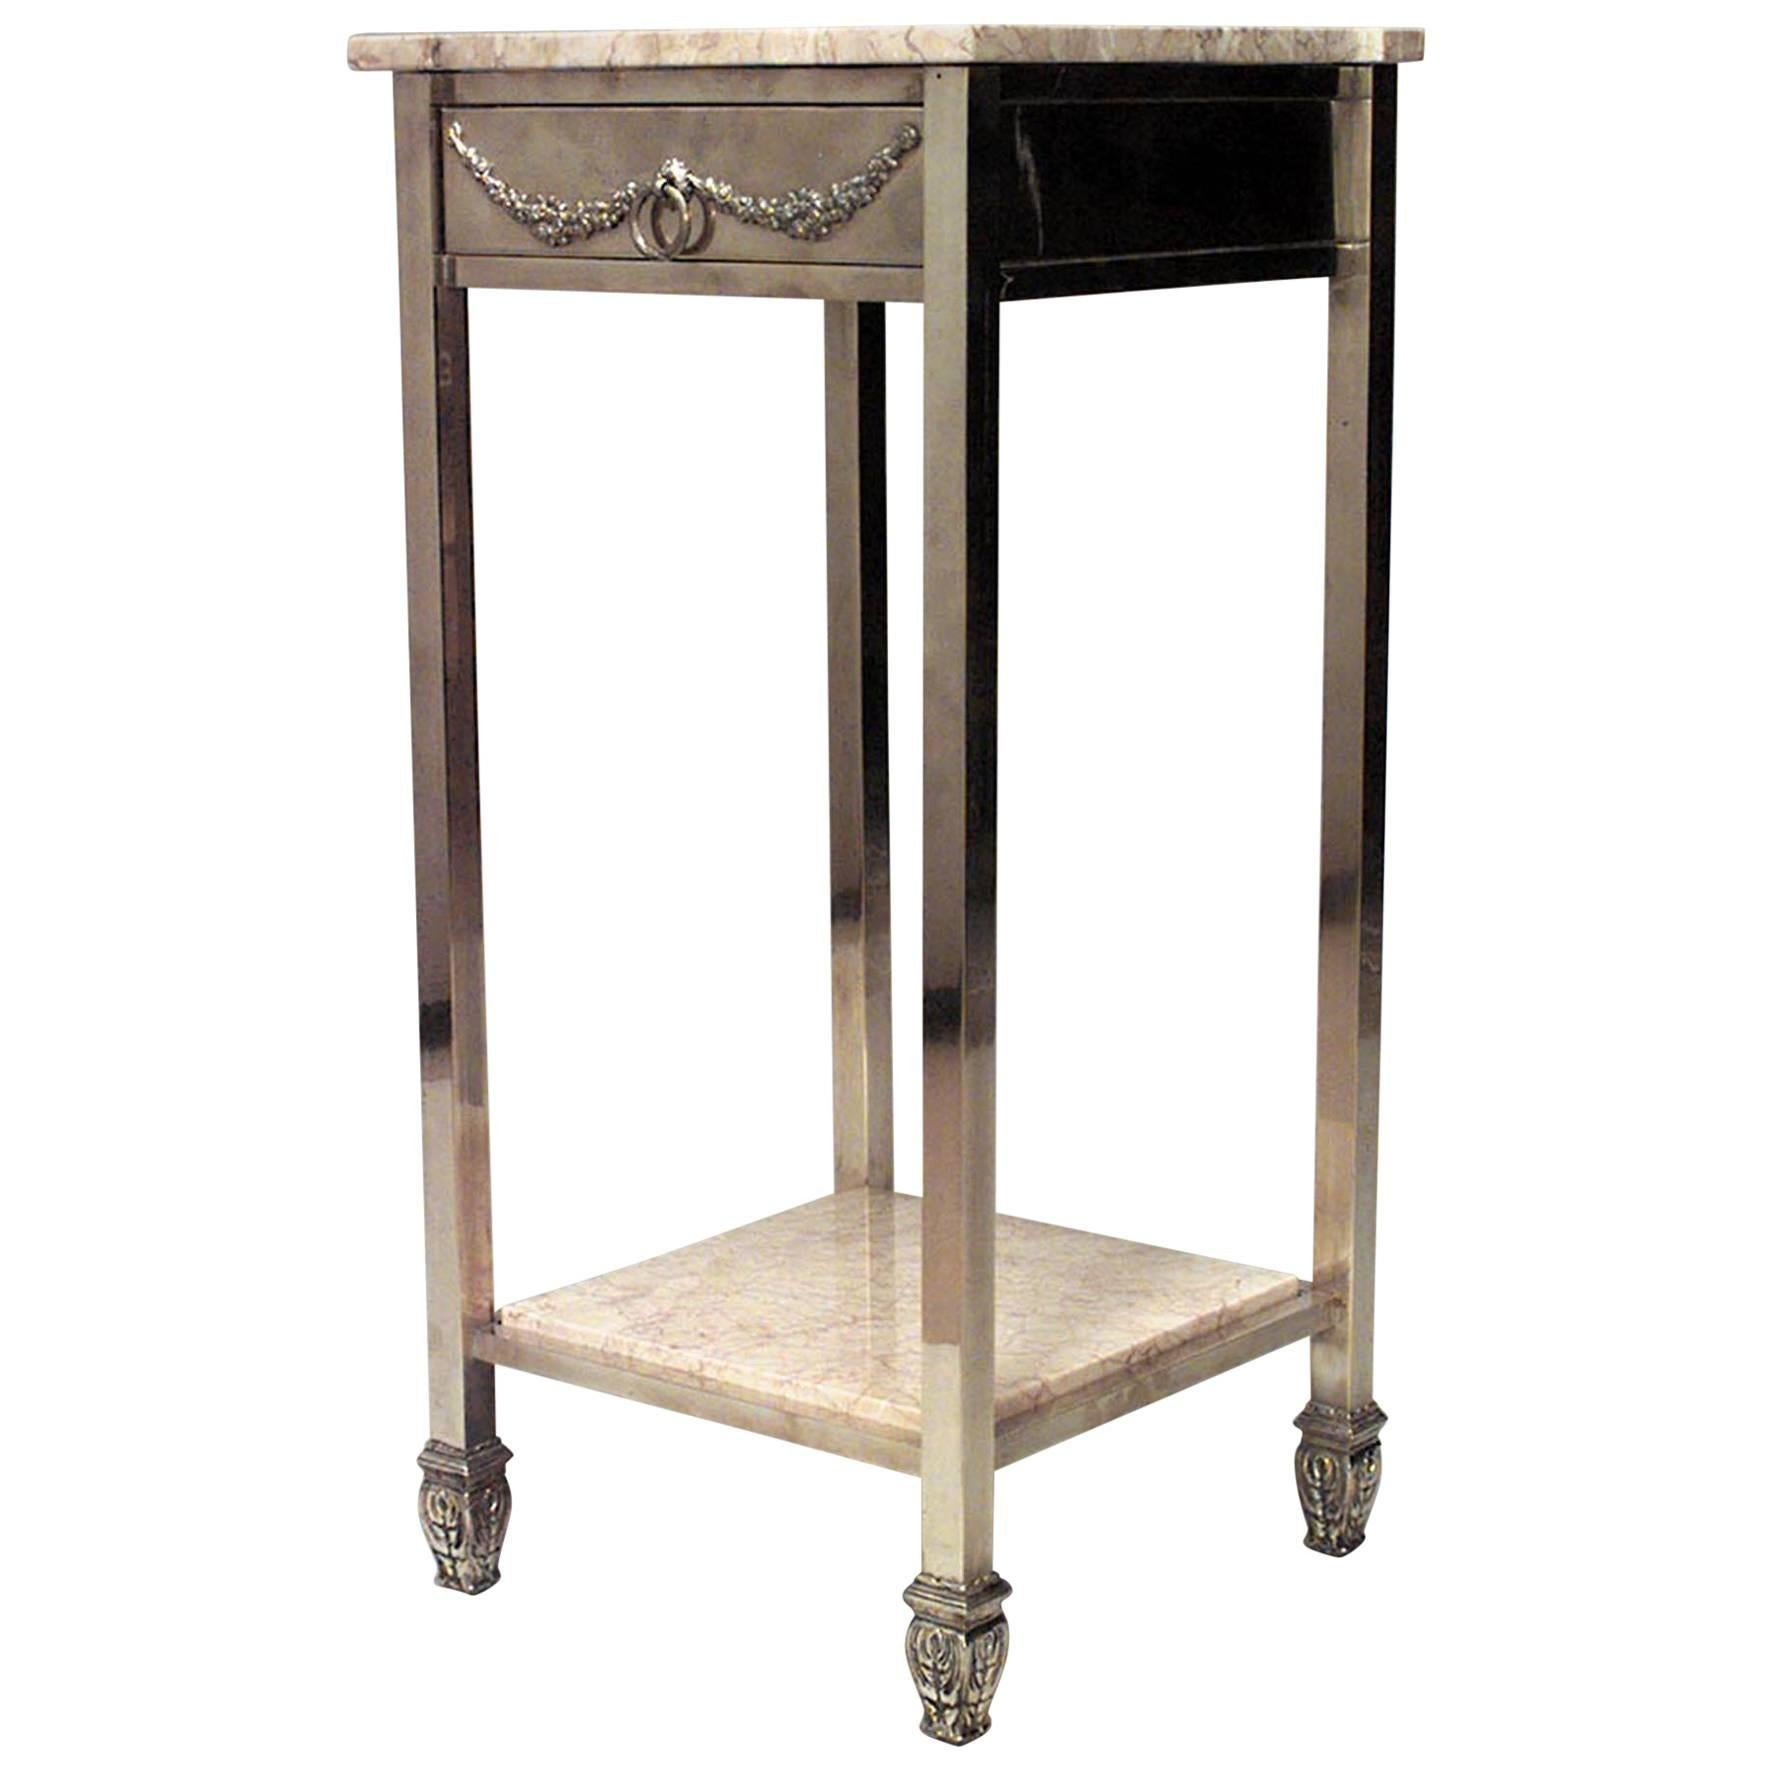 Victorian End Table American Victorian Brass Square End Table For Sale at 1stdibs